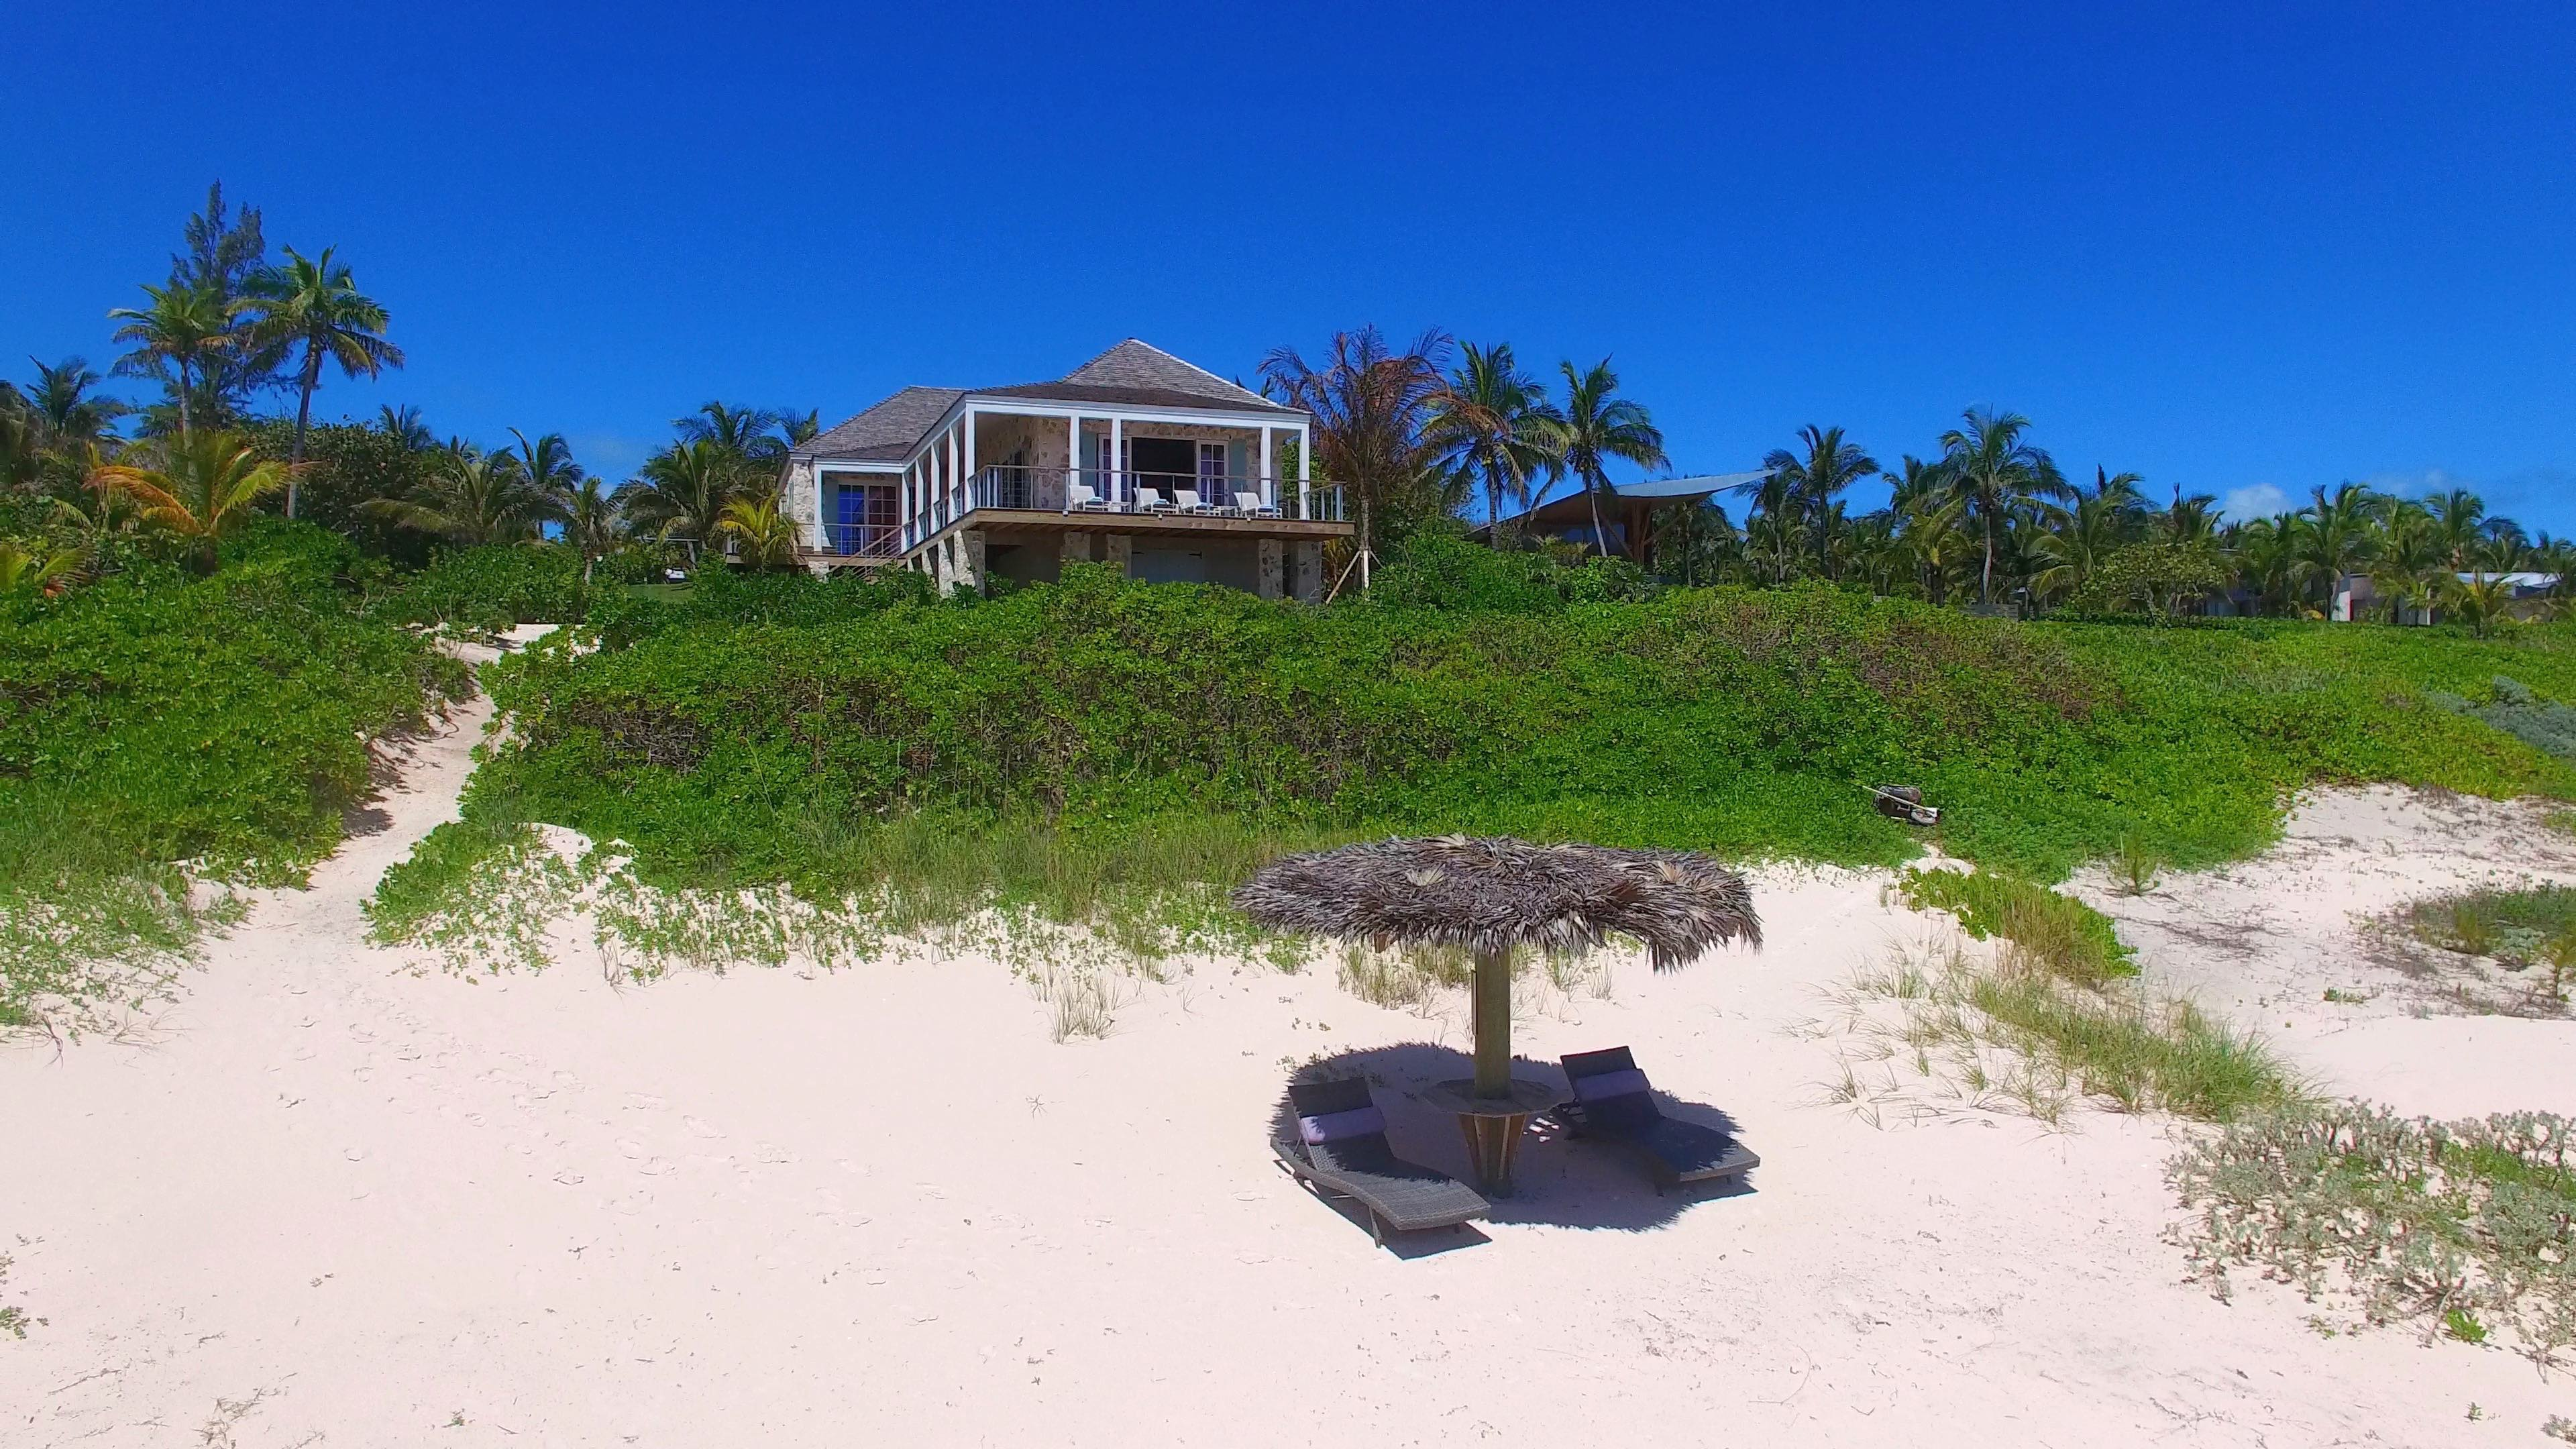 Coconut Beach Bahamas vacation rental home